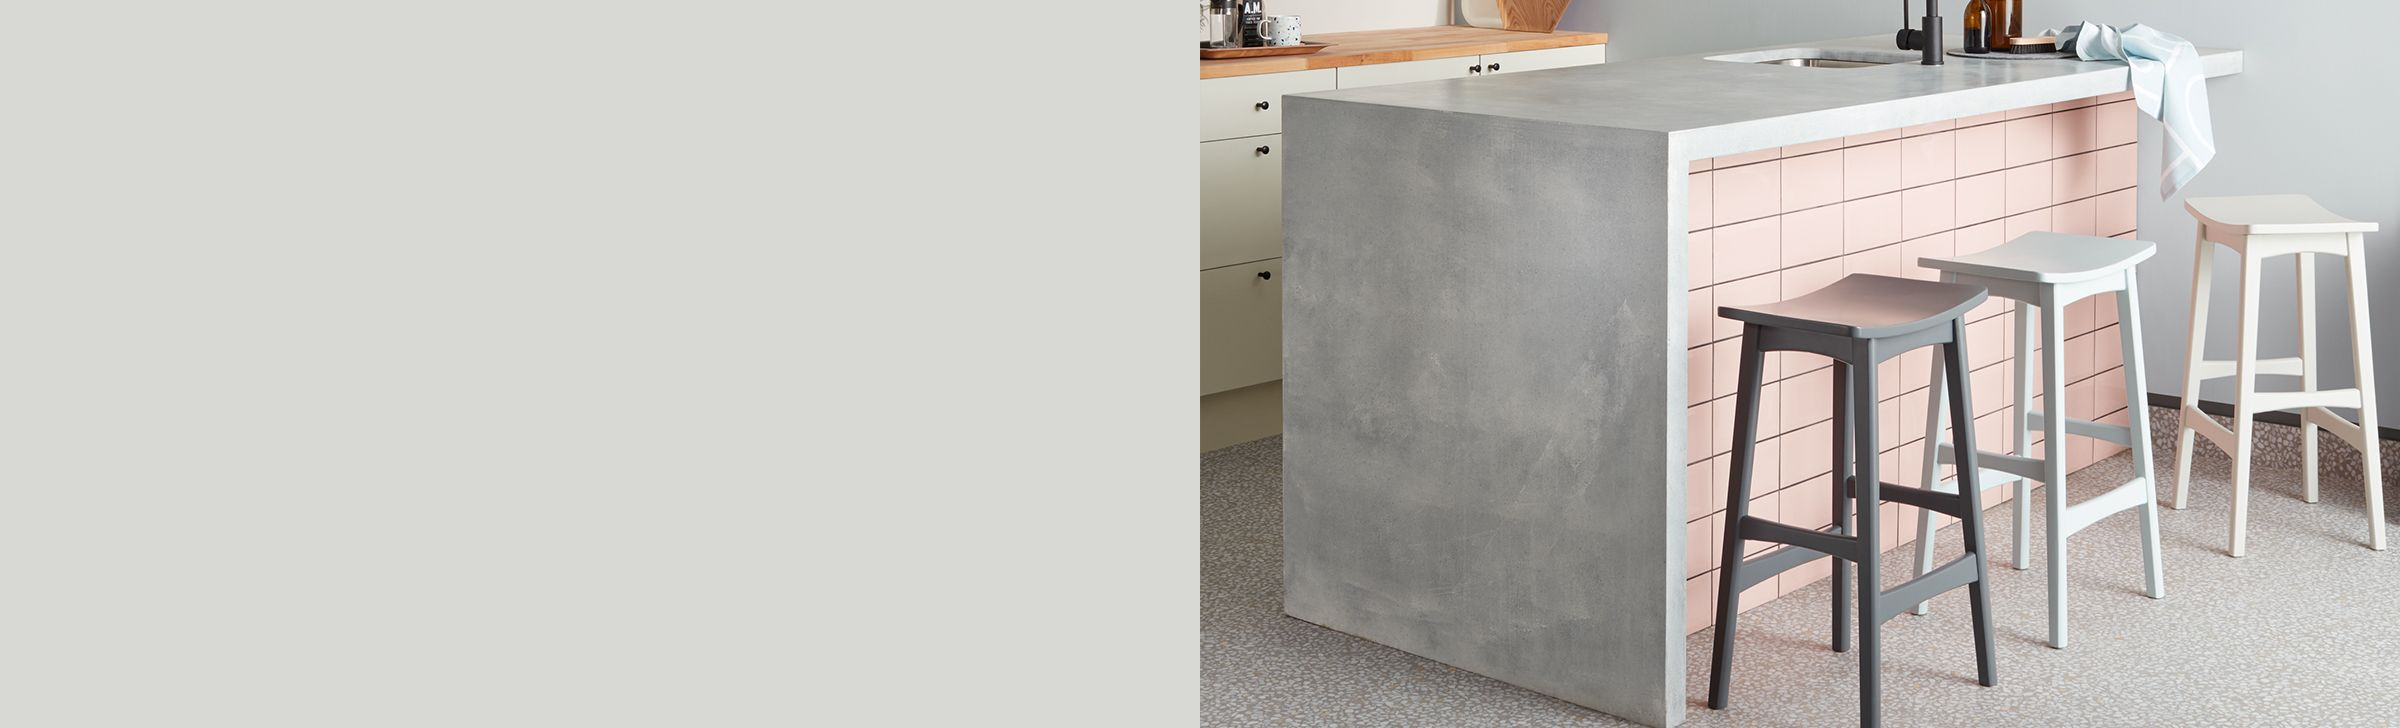 0a73de4bfd5 The ideal addition to breakfast bars or compact spaces